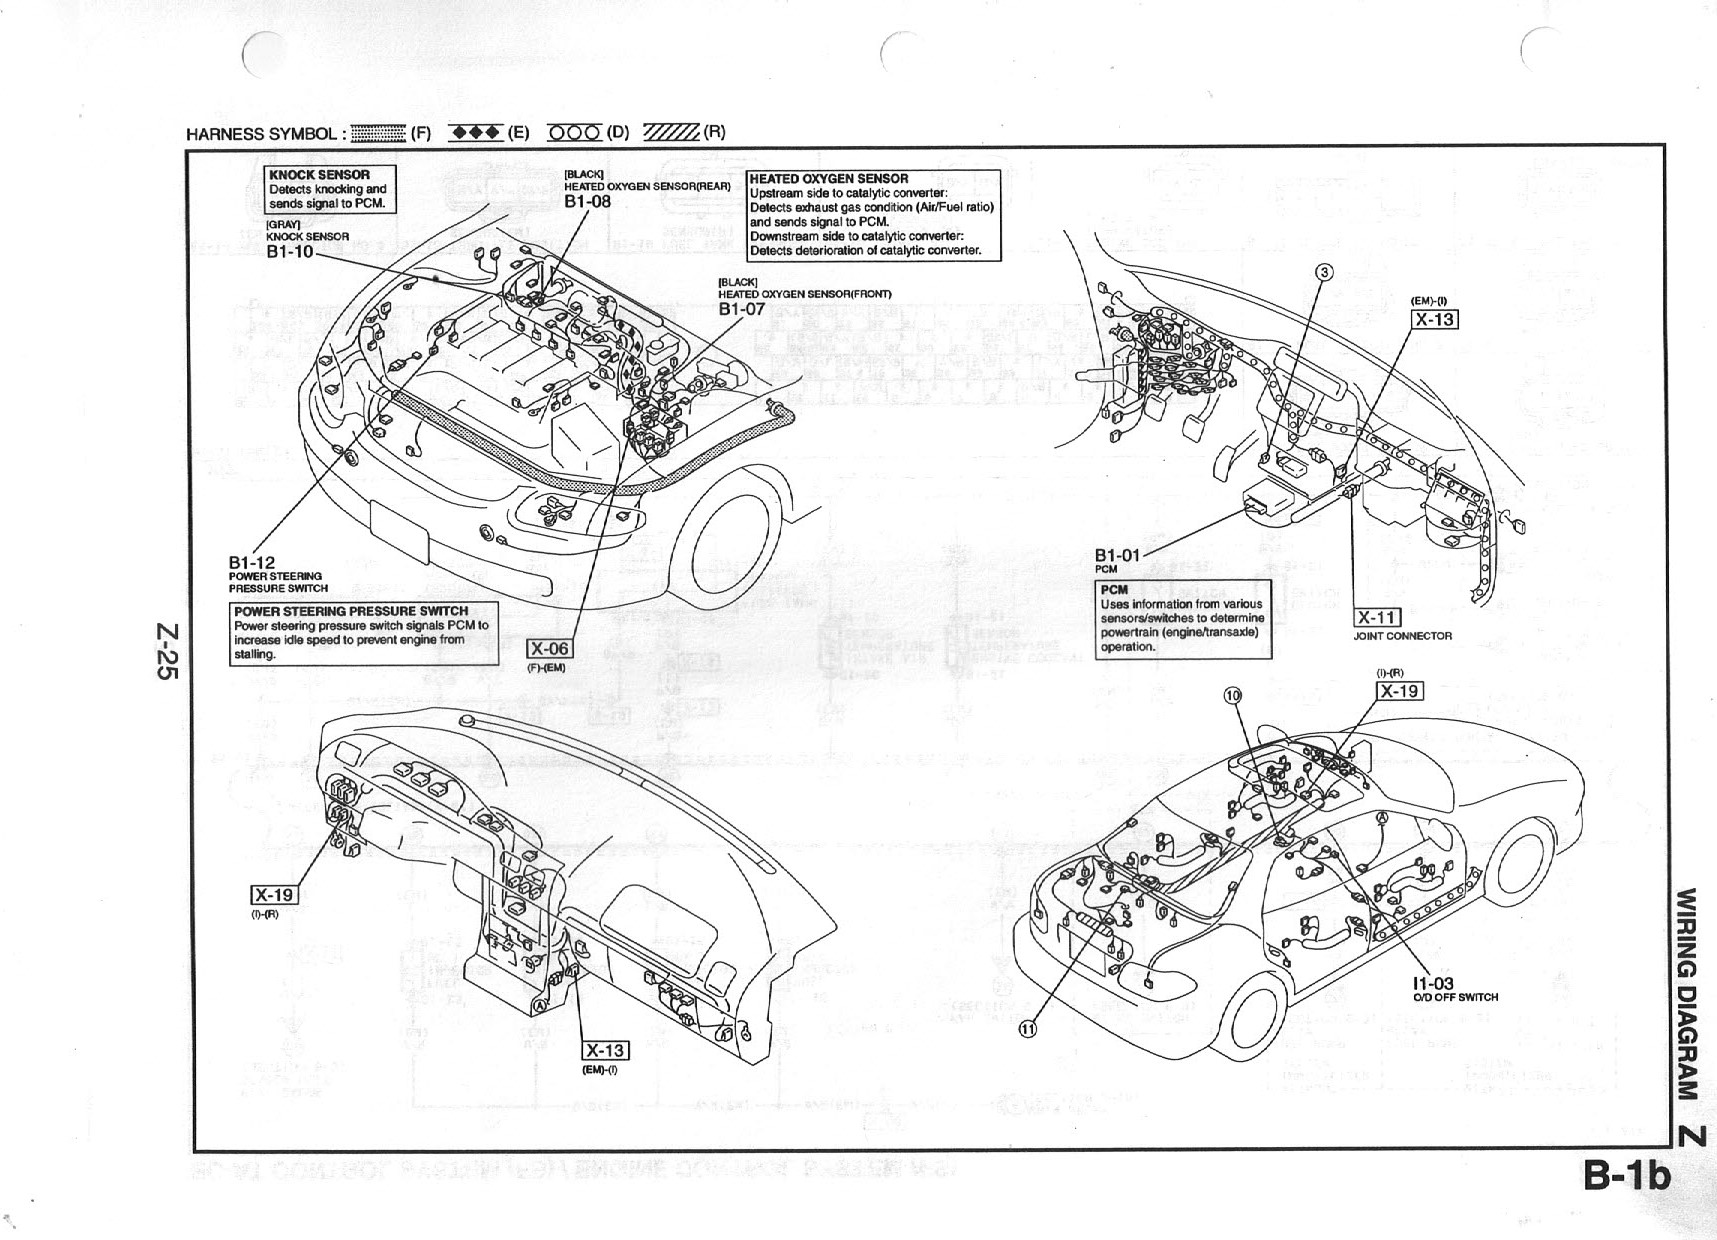 PMX626.info //US/Mazda 626 & MX-6/Work Shop Manuals/Scans